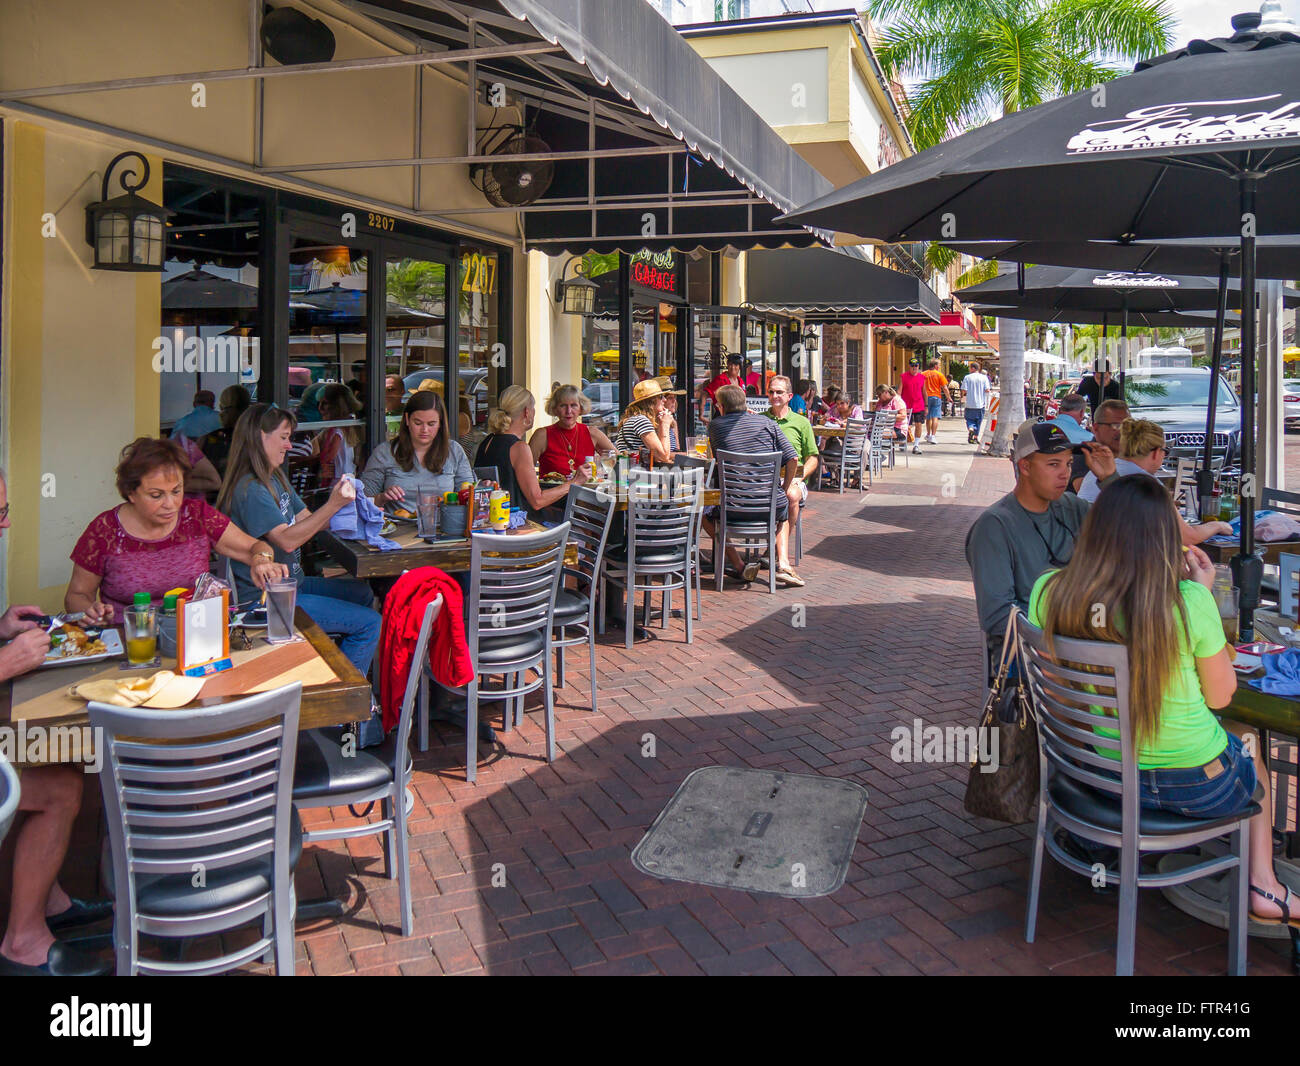 Outdoor dining at sidewalk cafe on First Street at Fords Garage Restaurant in downtown Fort Myers on the Gulf Coast - Stock Image